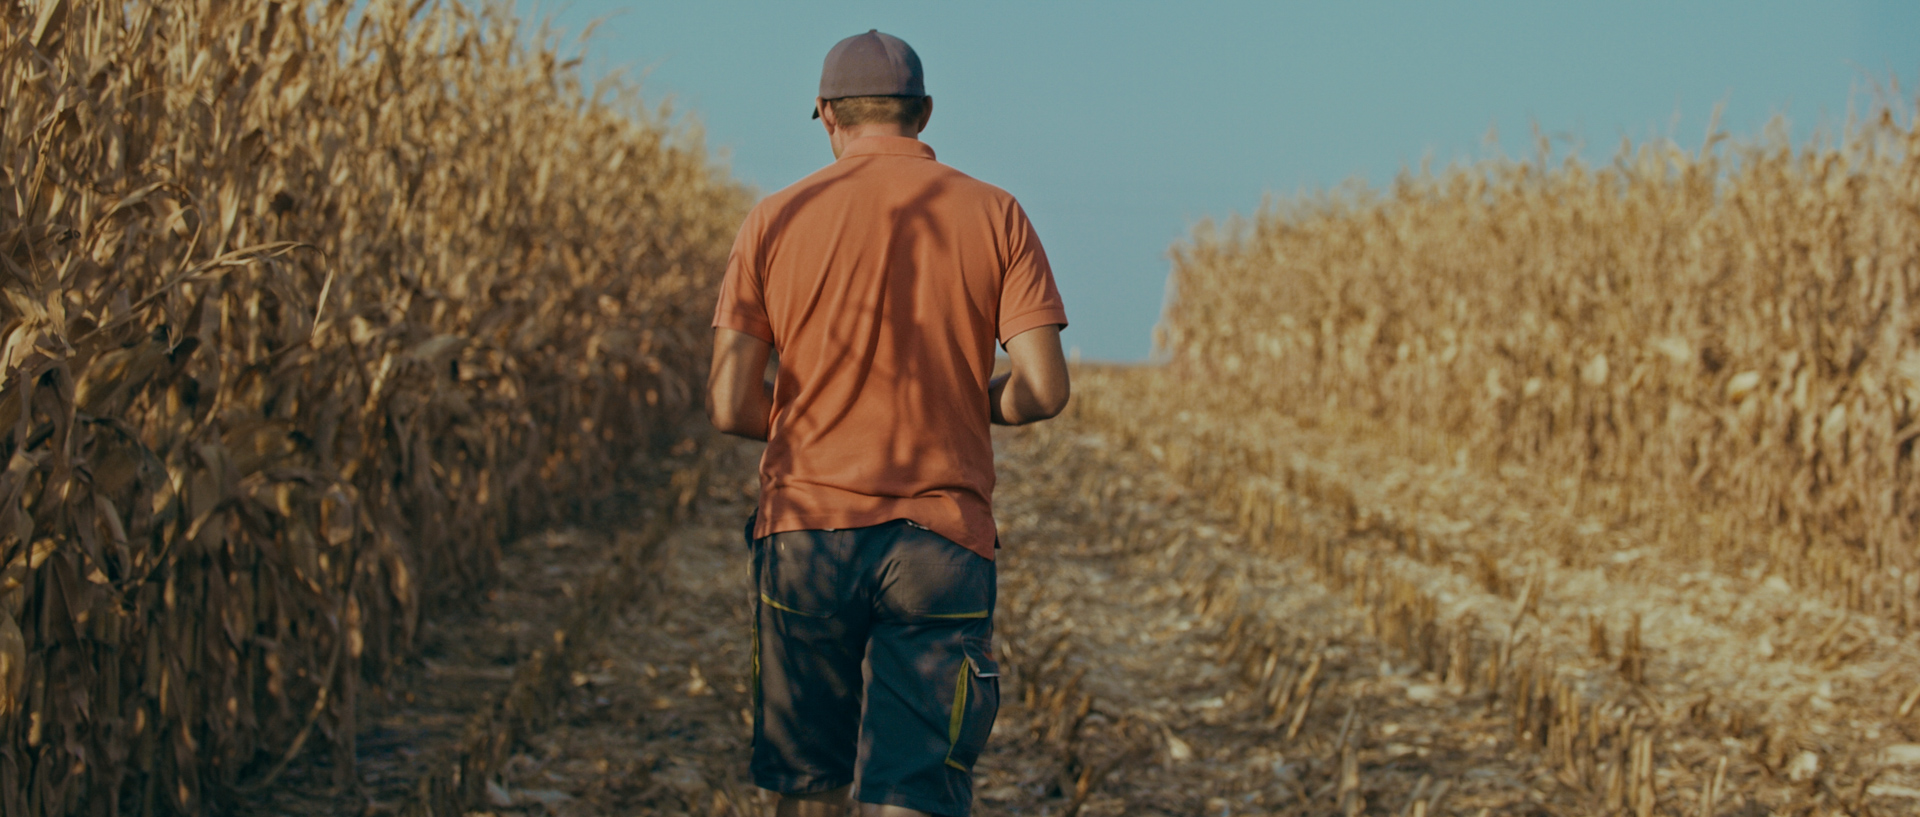 cosmin micu cornfield for mewi the farmers video by popotam productions video agency timisoara after color grading